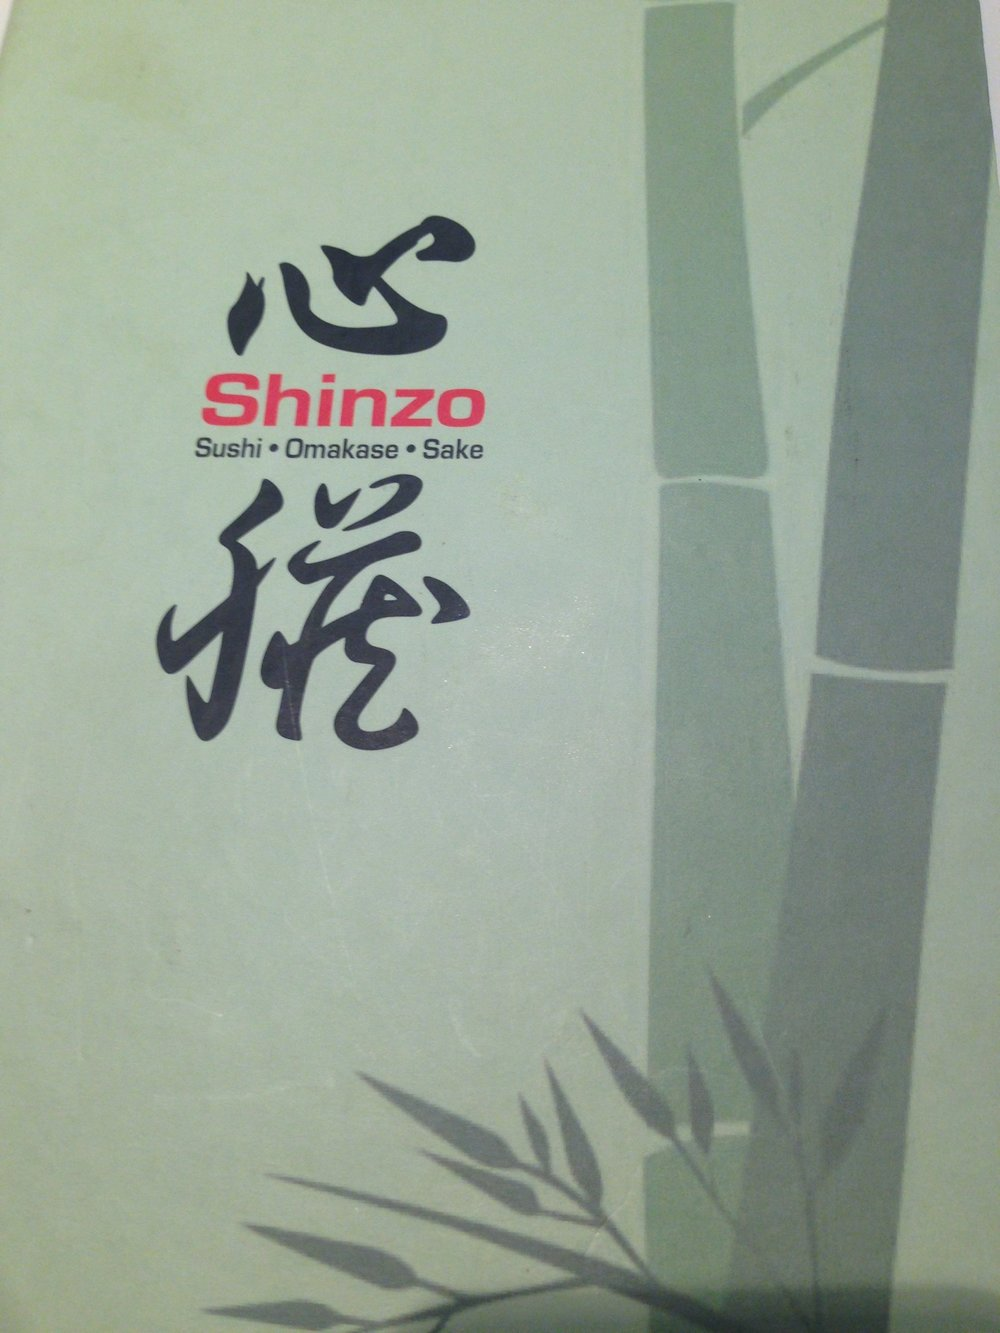 Shinzo at Carpenter Street: All nice things in one place. Sushi, Omakase, Sake.